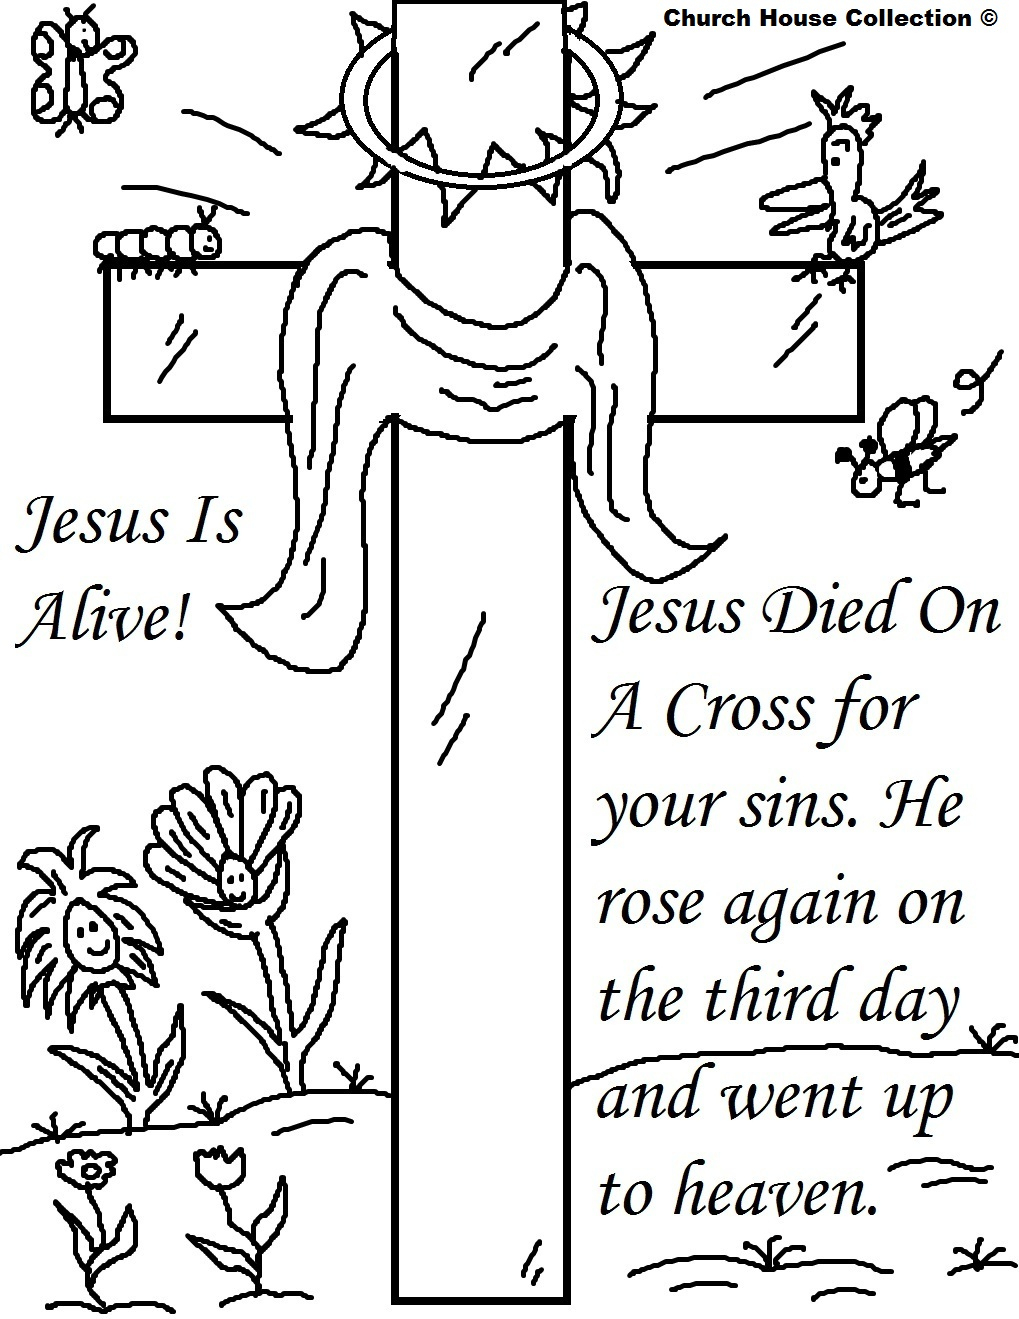 25 Religious Easter Coloring Pages | Free Easter Activity Printables - Free Easter Color Pages Printable